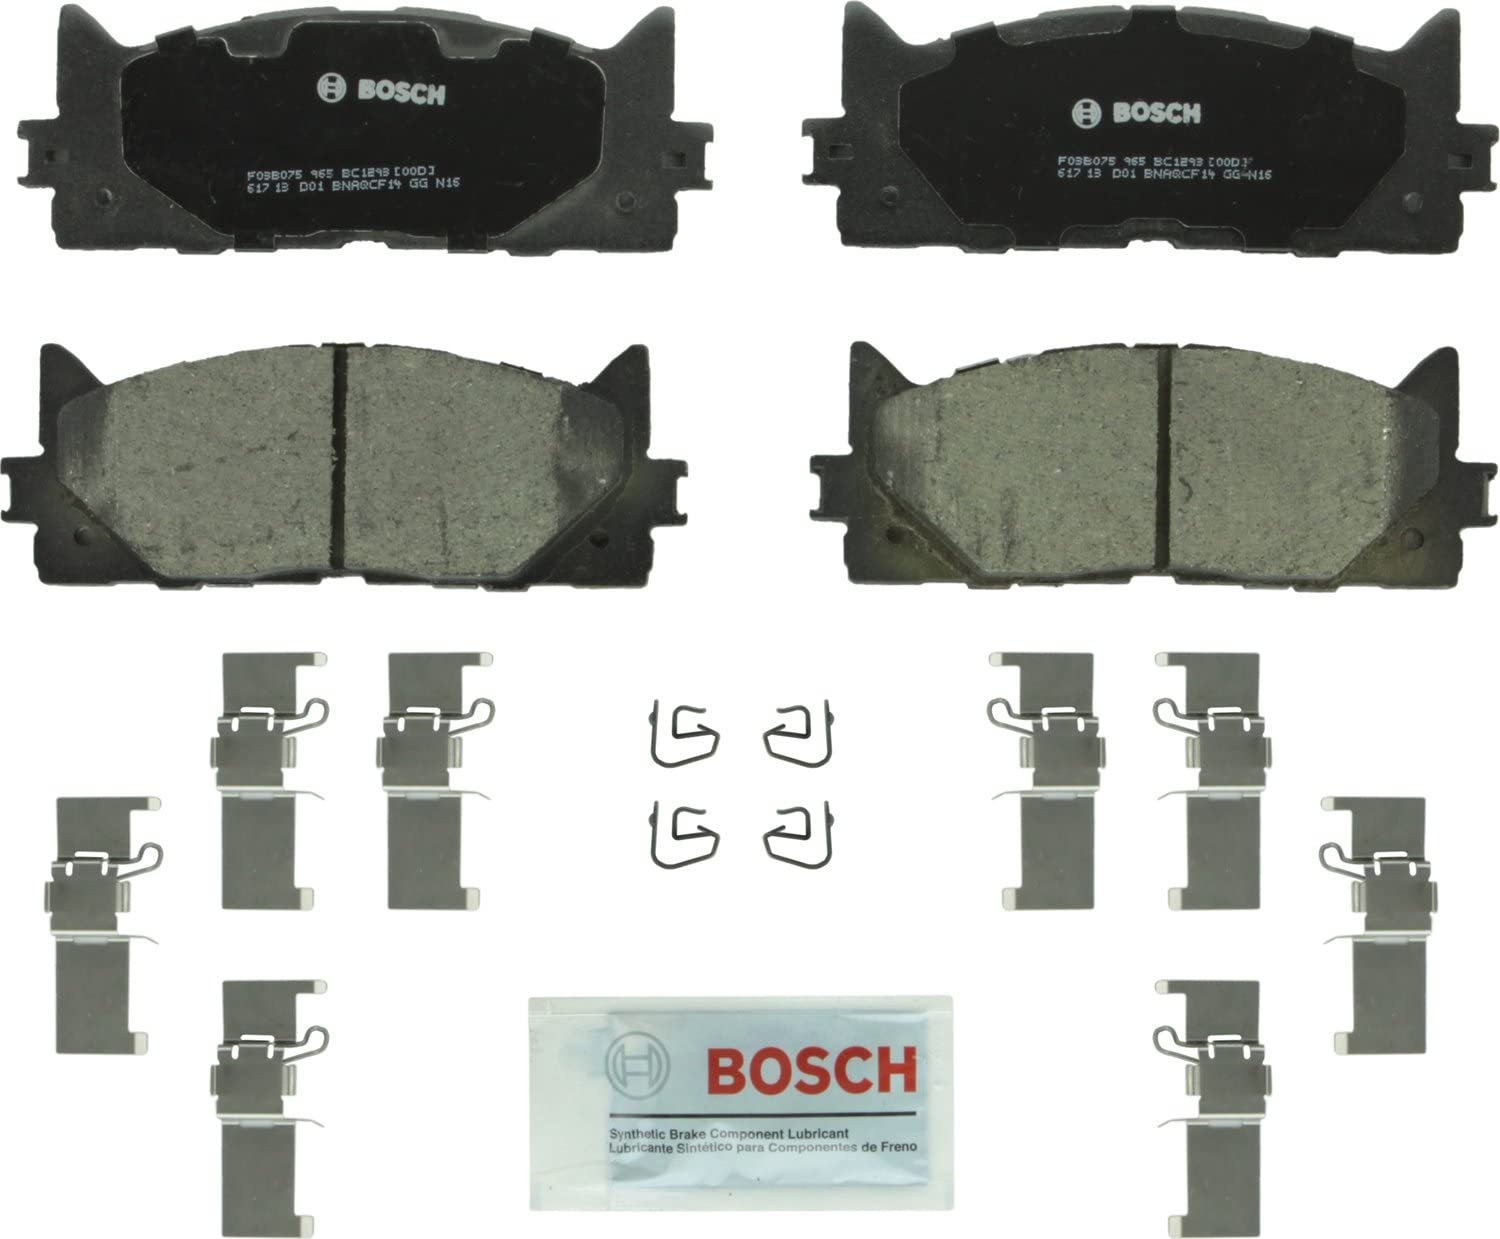 Bosch BC1293 QuietCast Premium Ceramic Disc Brake Pad Set For: Lexus ES300h ES350; Toyota Avalon Front Camry